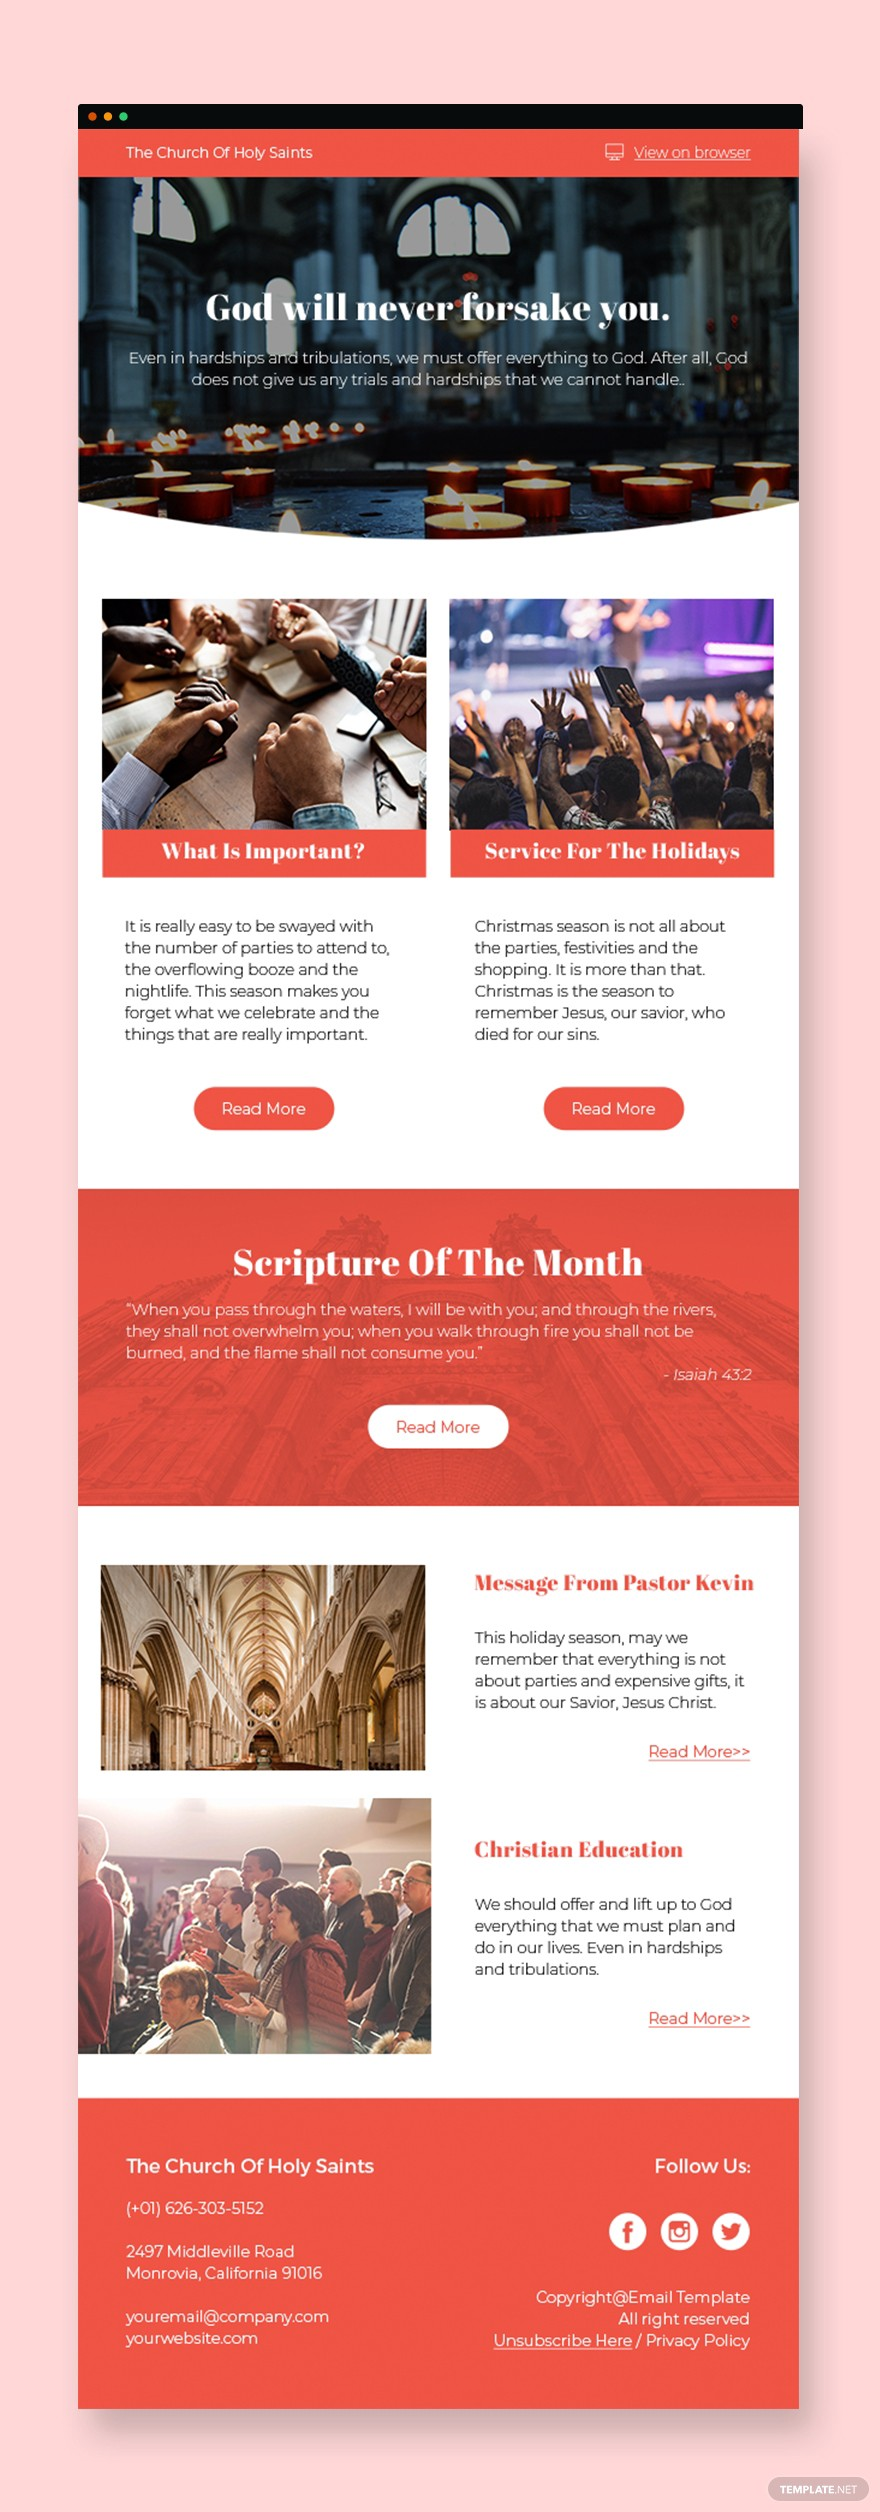 10 Free Church Newsletter Templates You Can Use Now | by ...